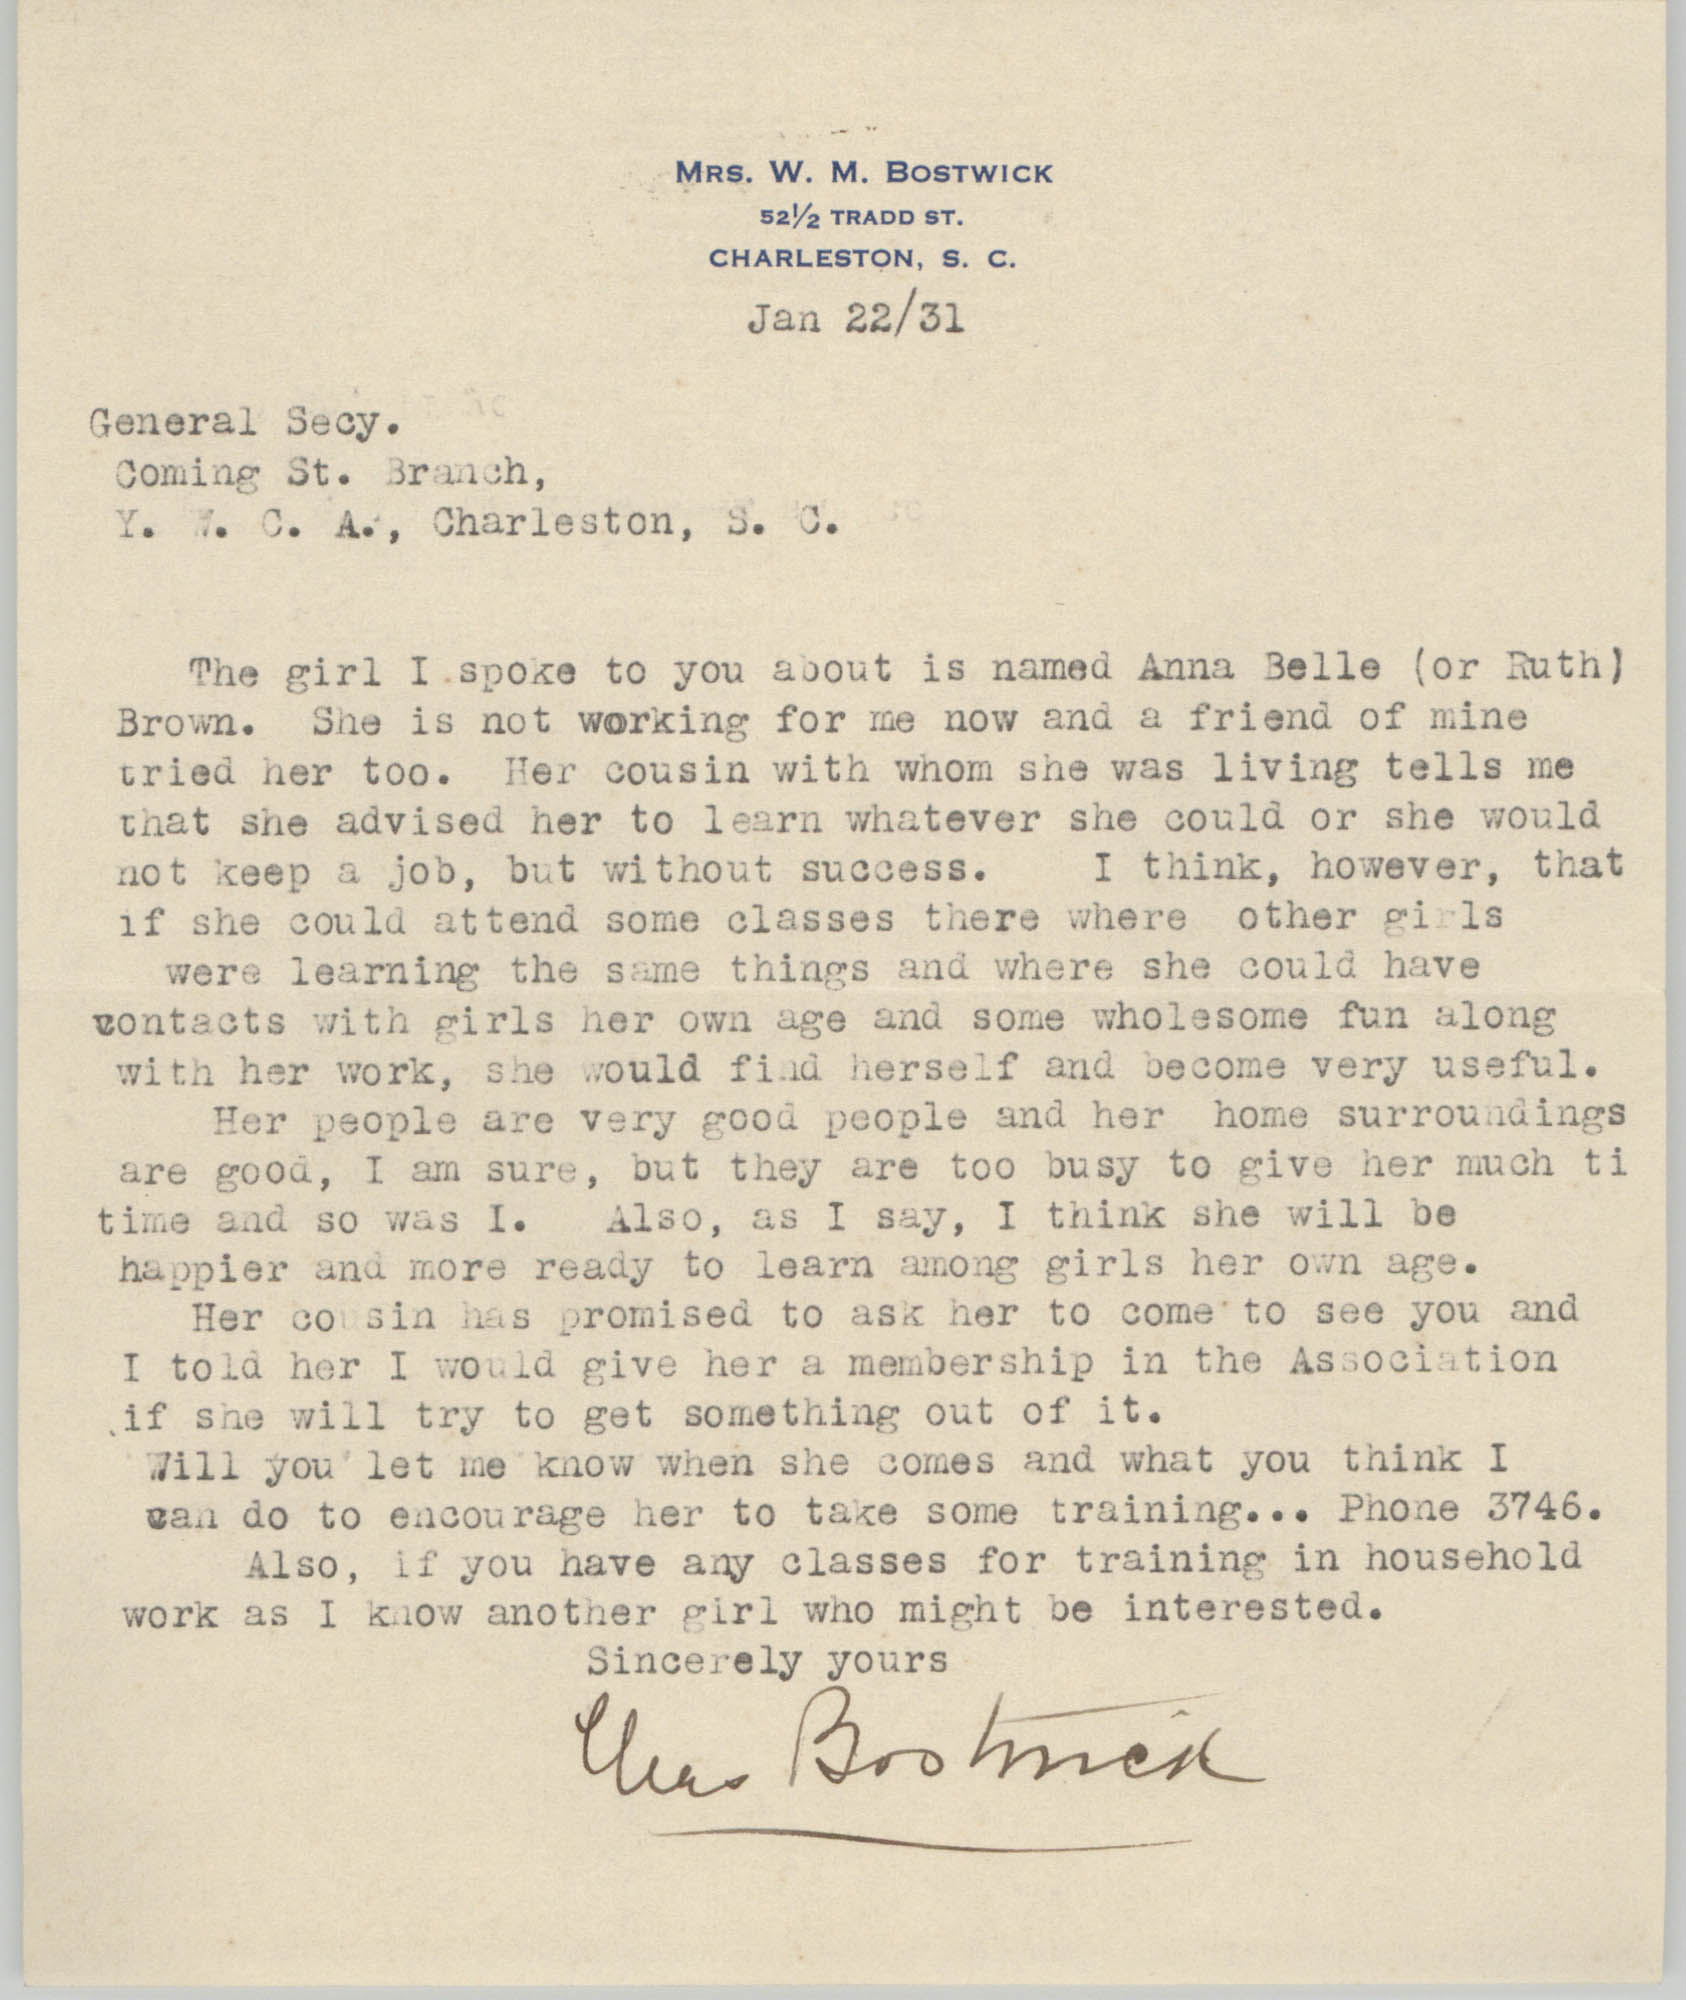 Letter from W. M. Bostwick to General Secretary for the Coming Street Y.W.C.A., January 22, 1931